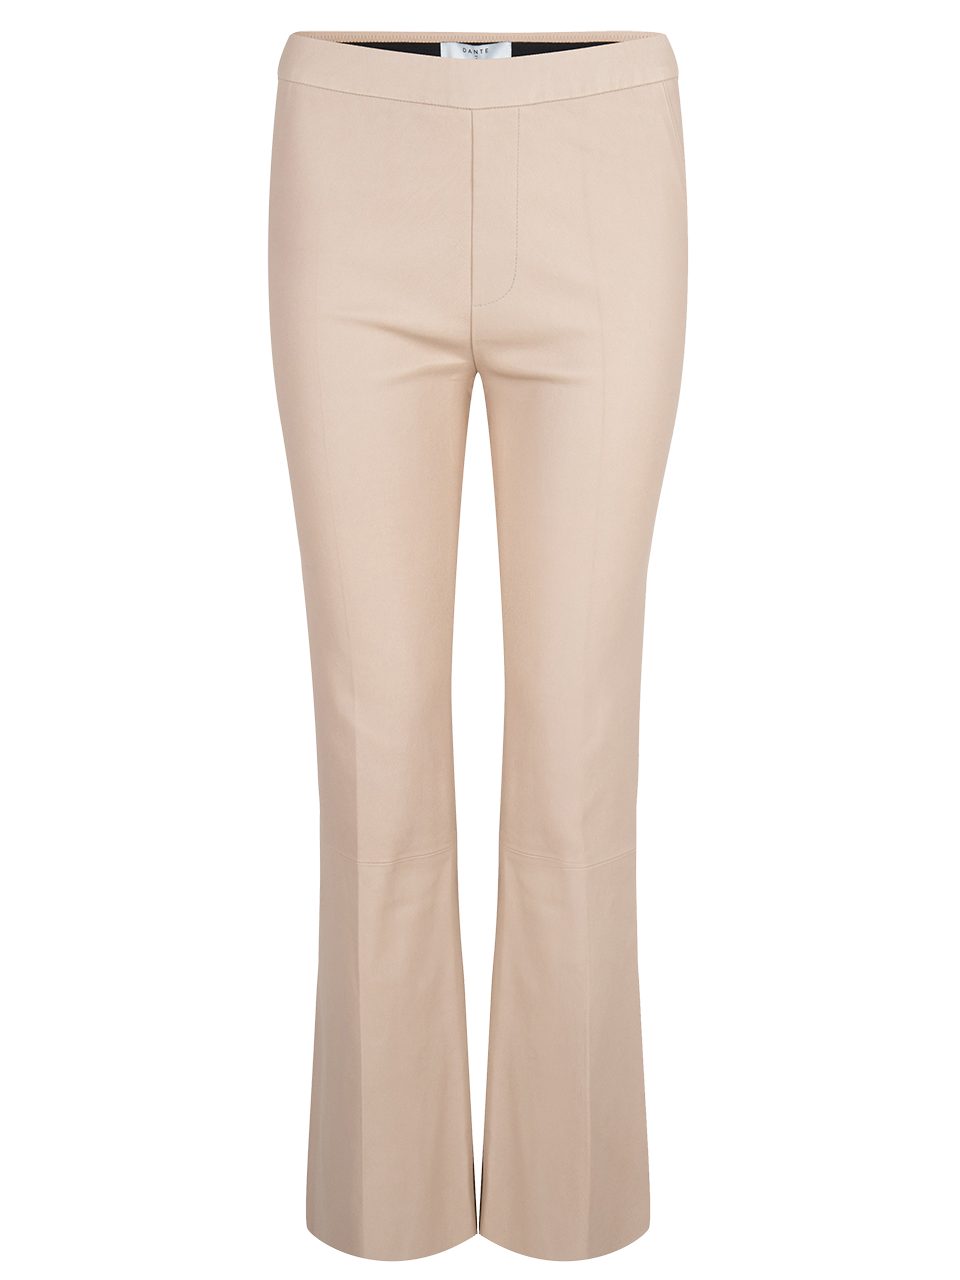 Tyson crop flare leather pants-1